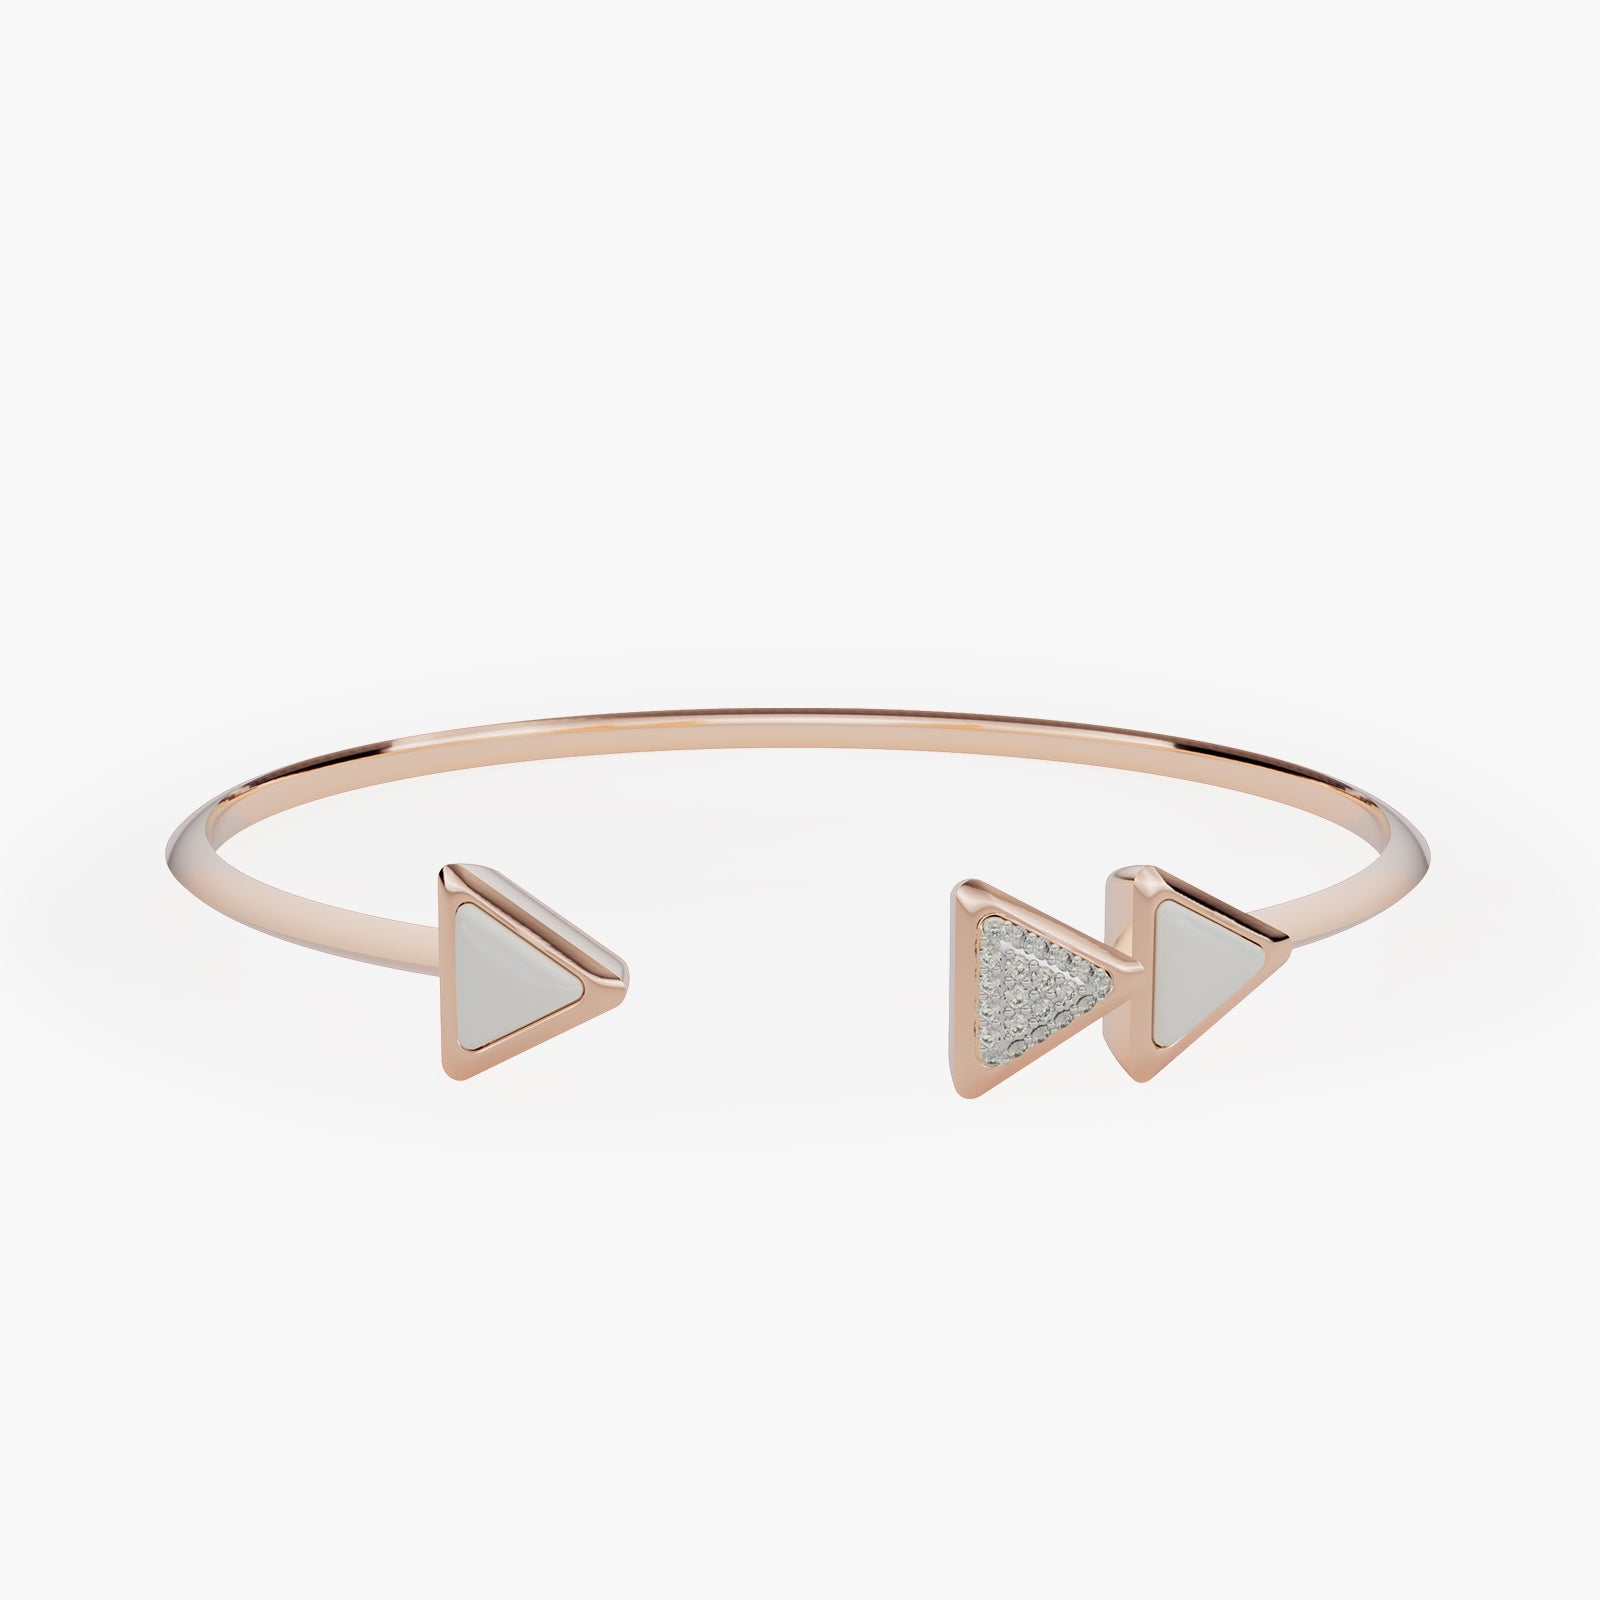 Bracelet Dove Vai Forward Exquisite Rose Gold Kogolong and Diamonds